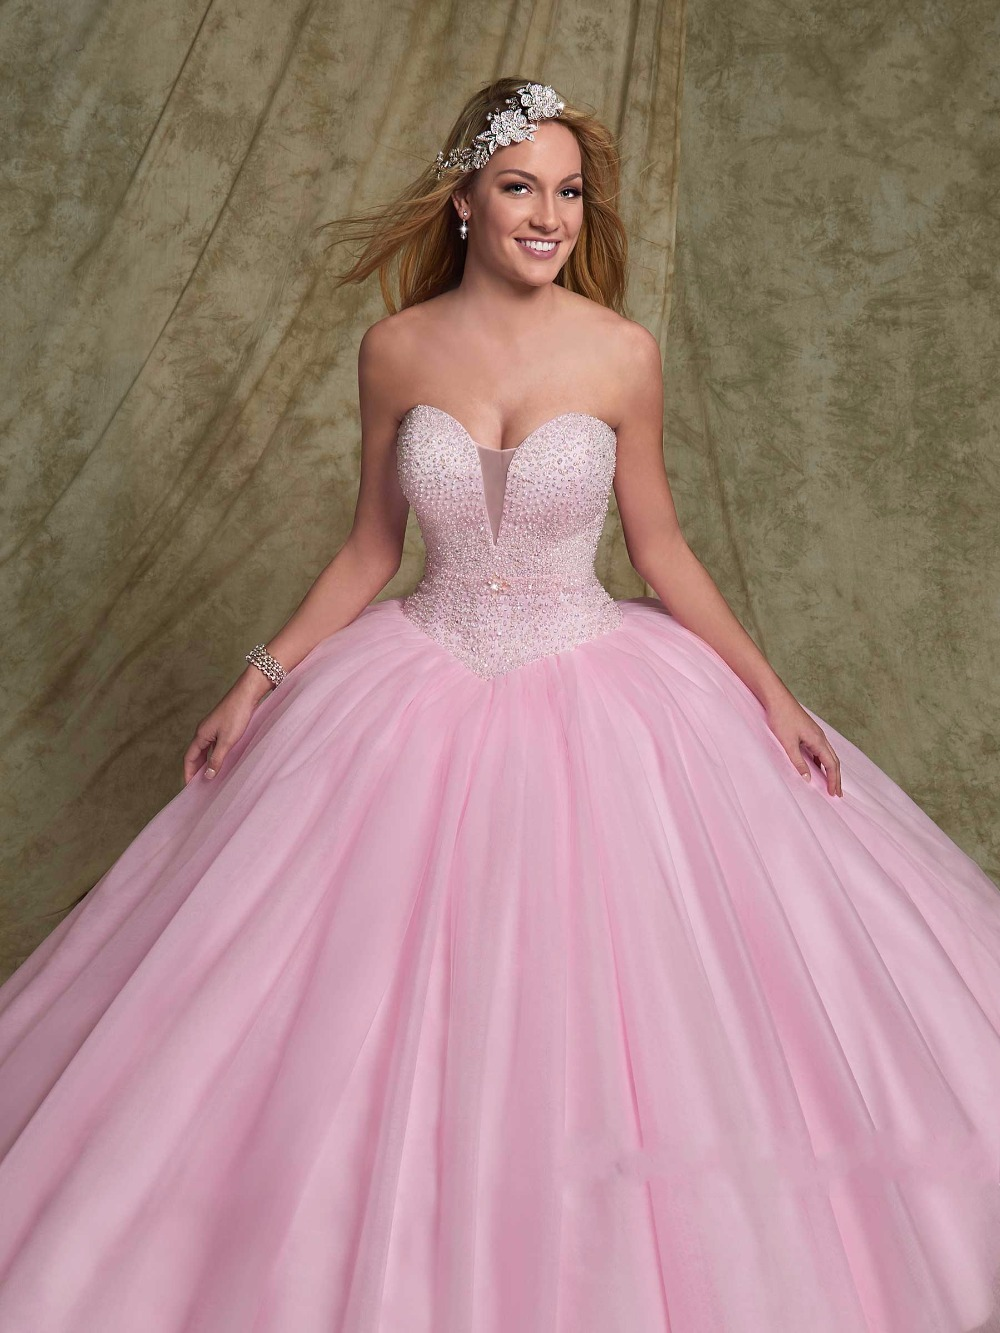 Pink Non White Colorful Ball Gown Wedding Dresses With Jackets ...